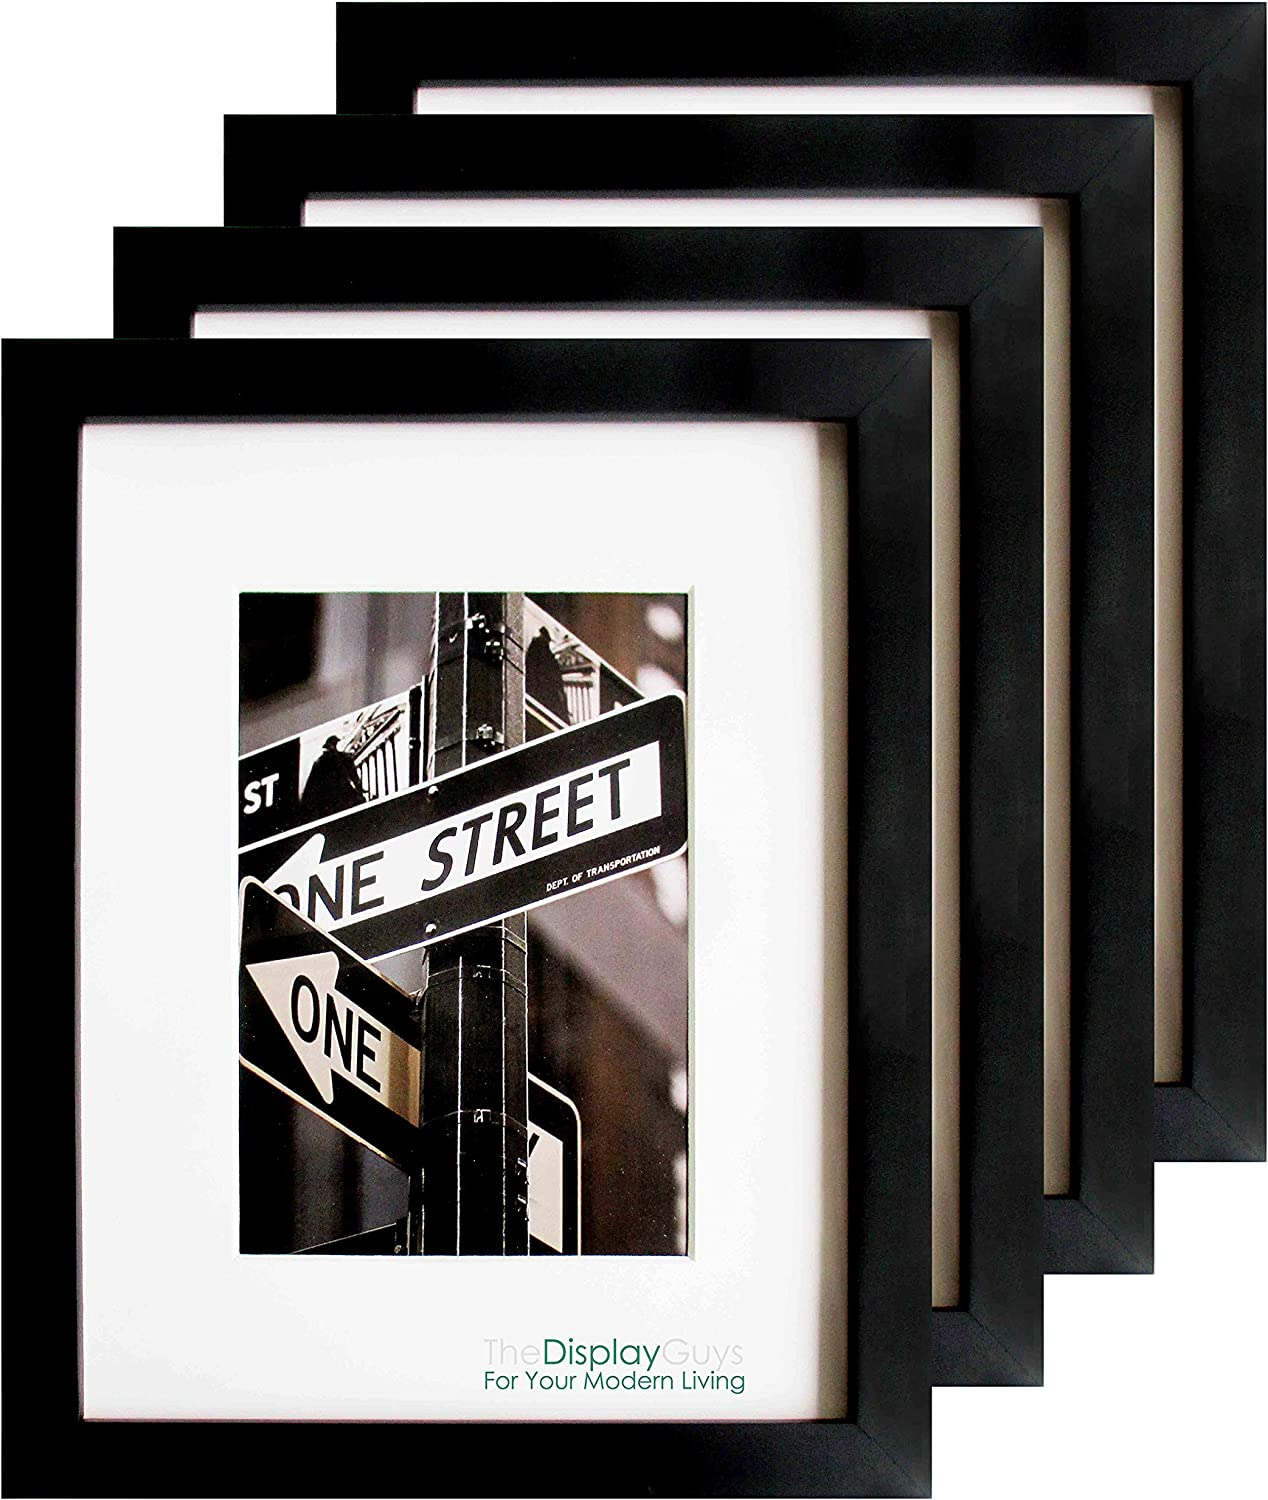 TheDisplayGuys 4-Pack Solid Pine Wood 18x24 Picture Frames w. Tempered Glass matted to 12x18 (Black) - for Wall Hanging, Smooth Border Finish (Value Set)